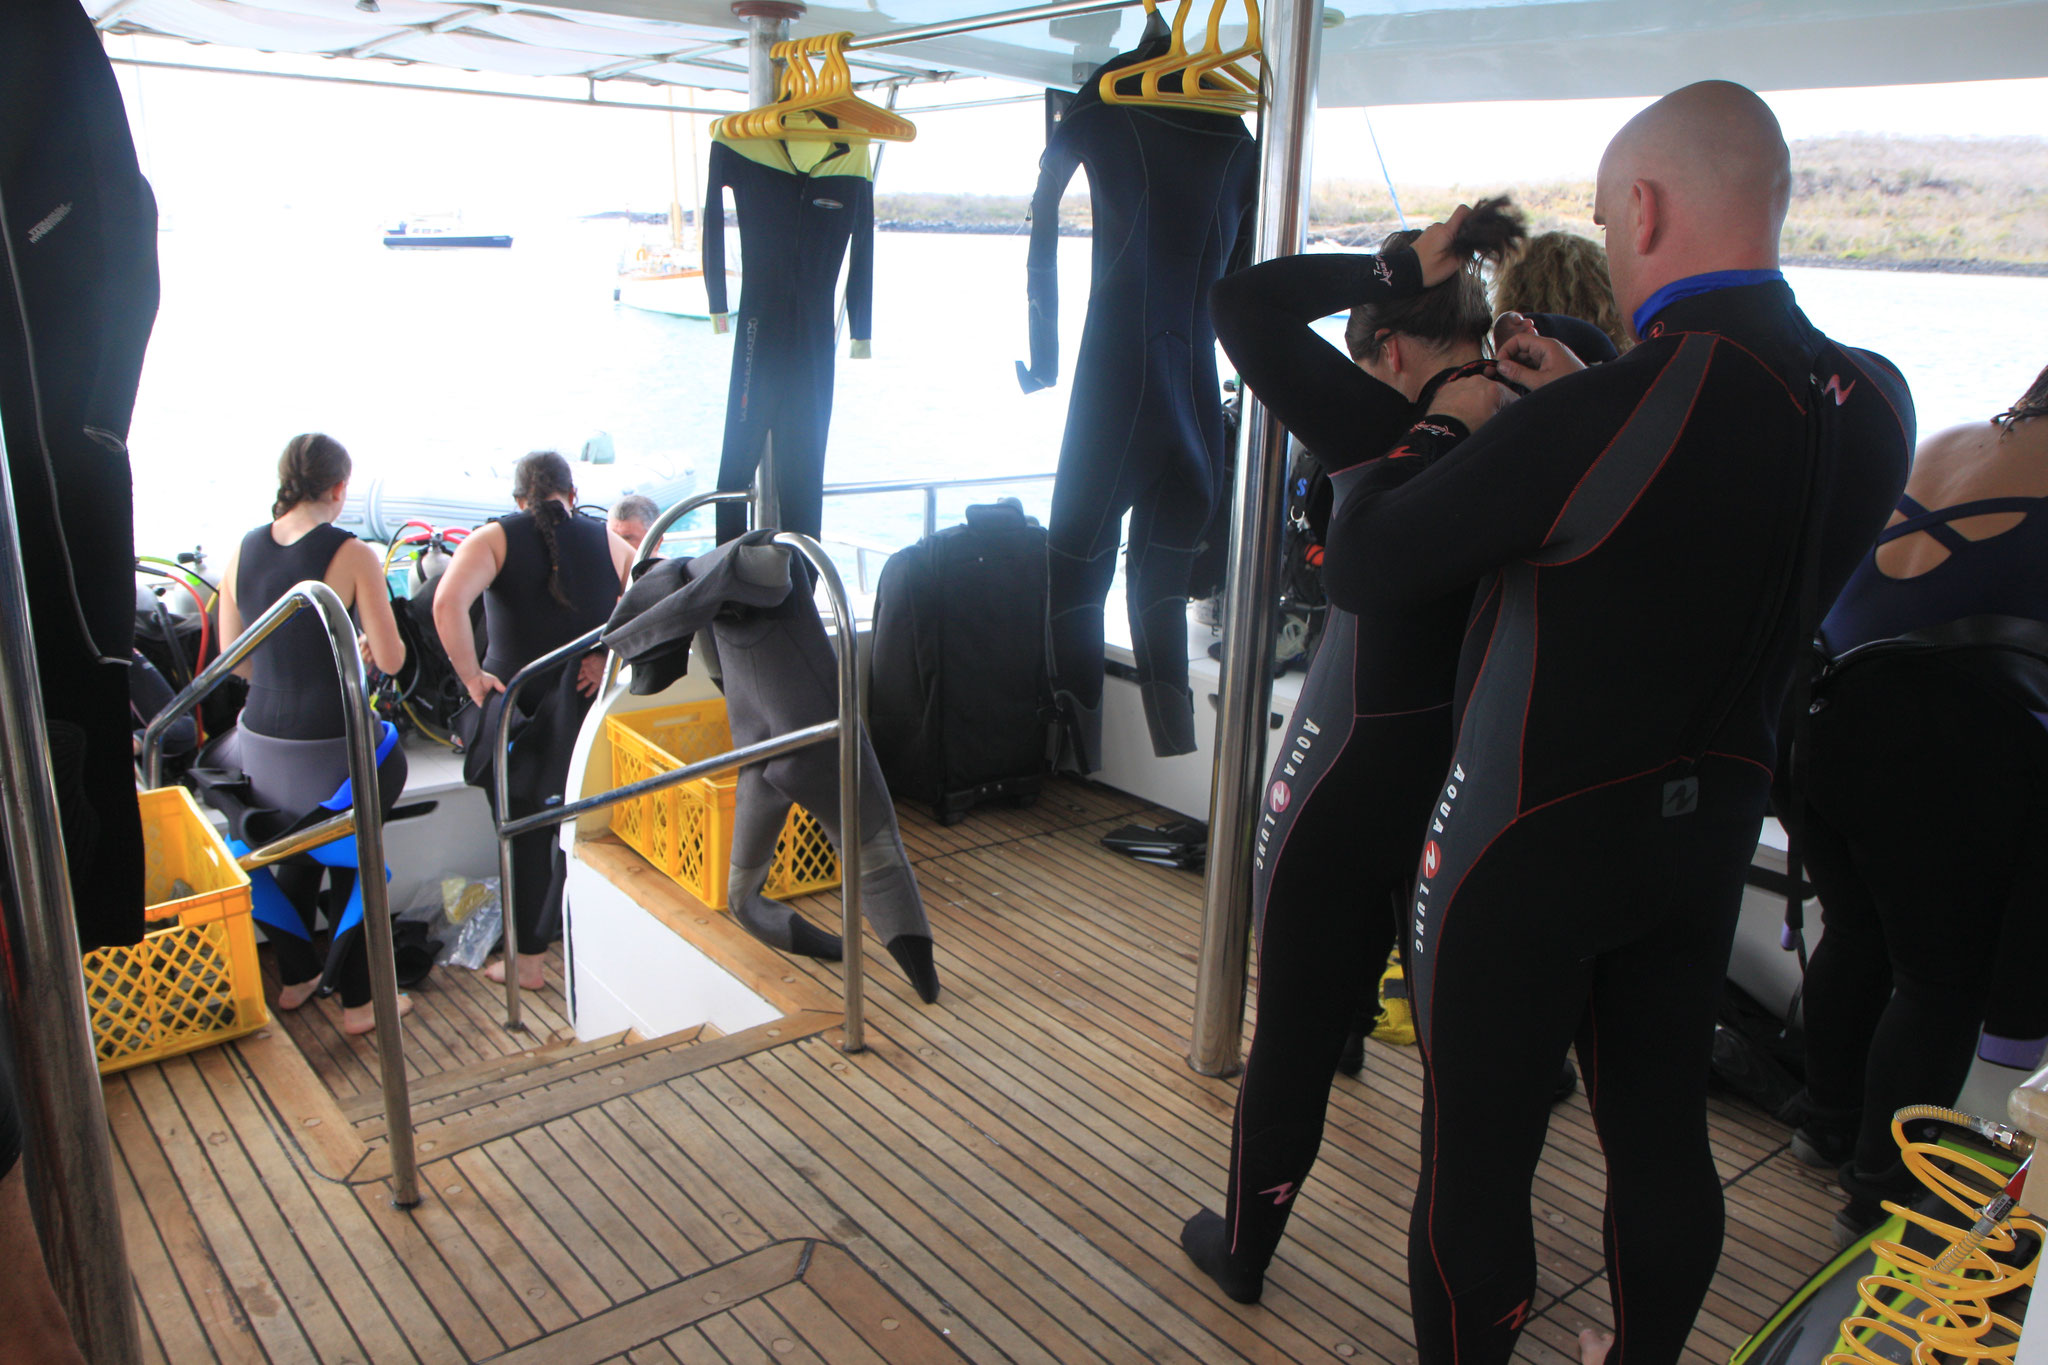 Galapagos Shark Diving - divers getting ready on the dive deck of the ship Galapagos Dive Liveaboard